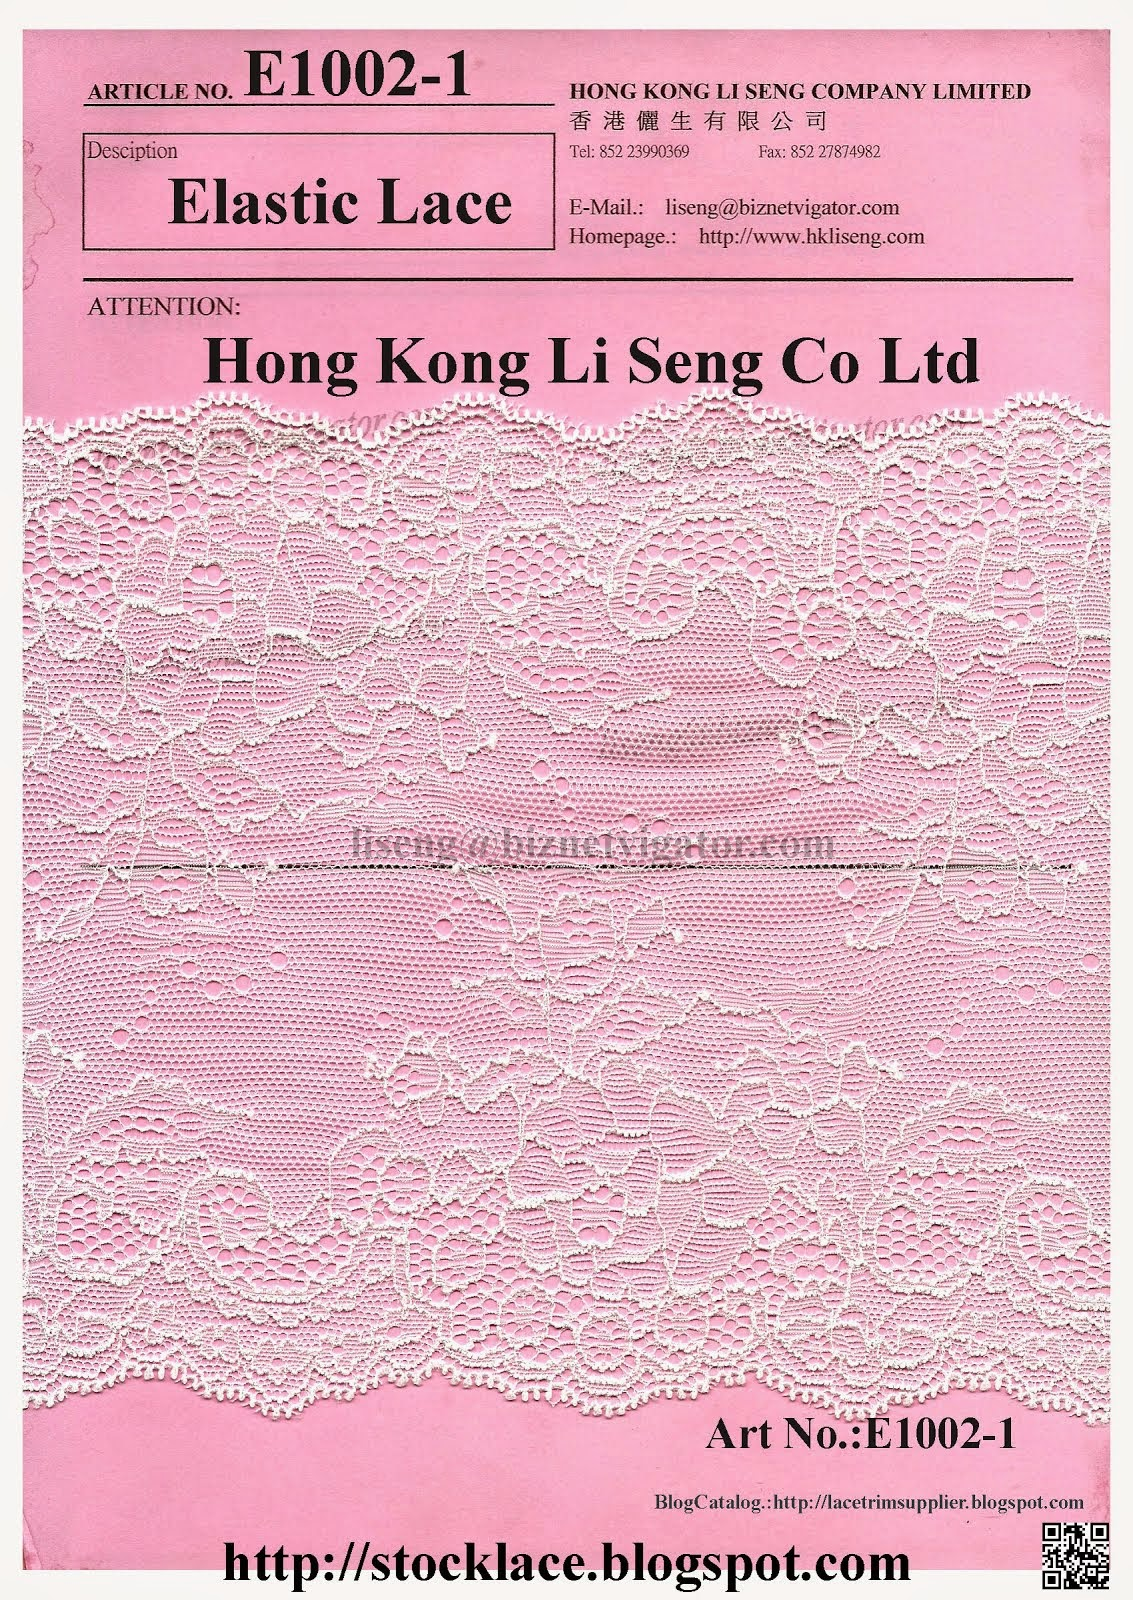 In-Stocklot Elastic Lace  Manufacturer - Hong Kong Li Seng Co Ltd